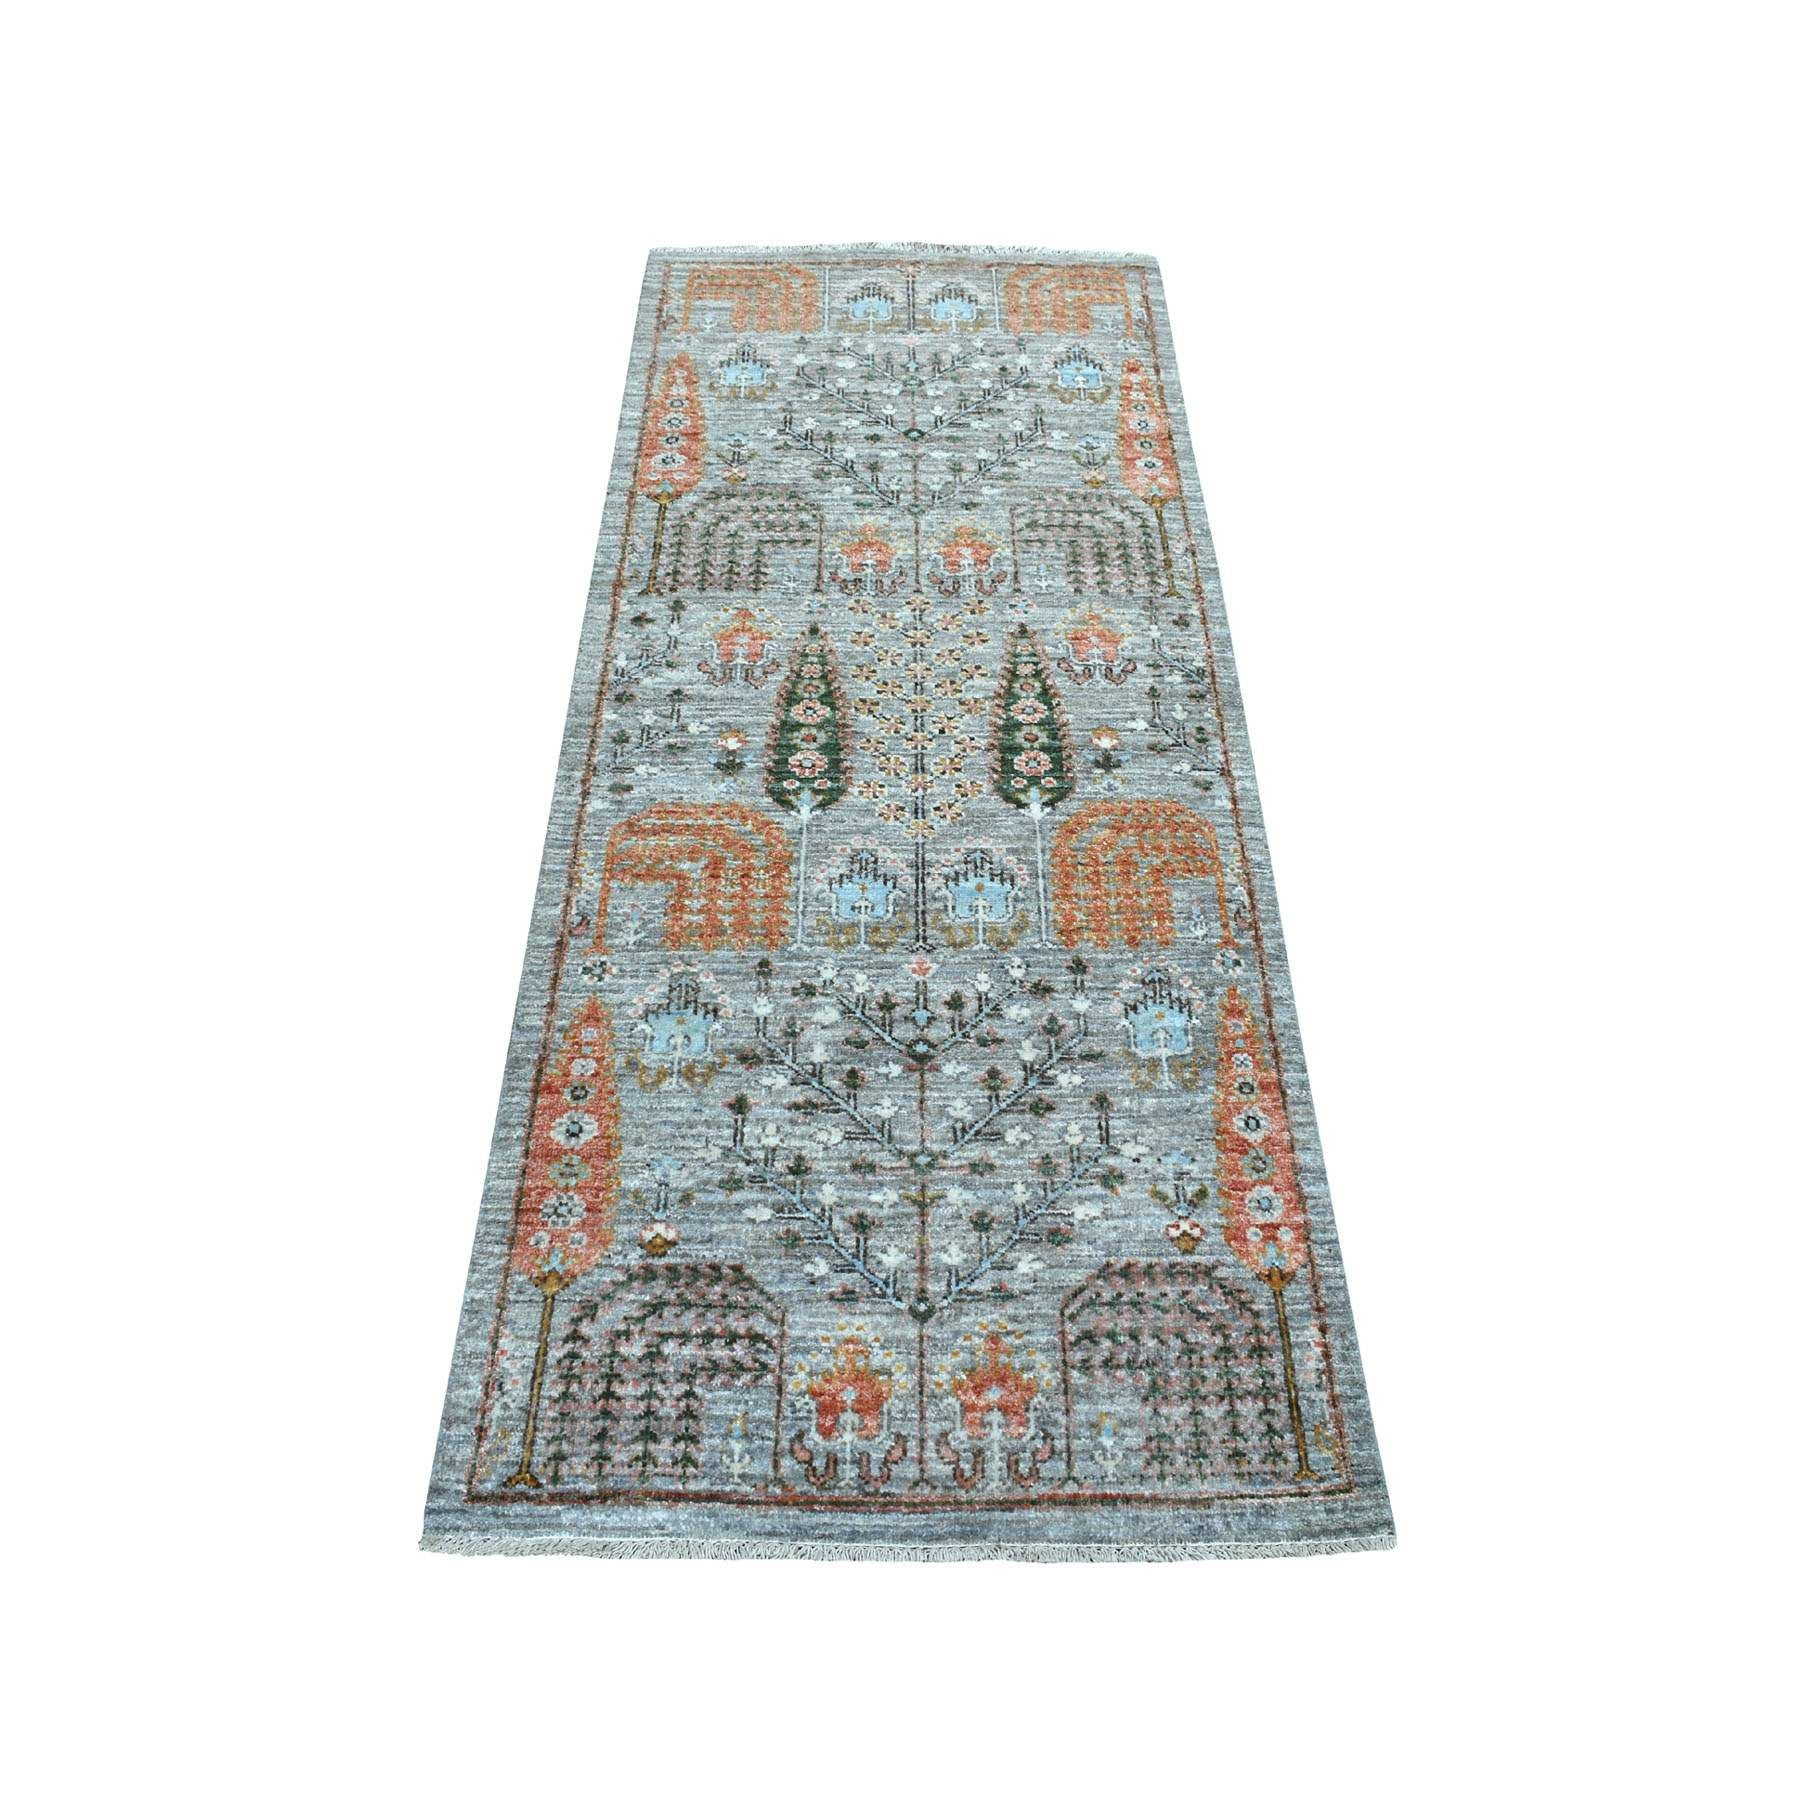 Gray Peshawar Willow And Cypress Tree Design Hand Knotted Oriental Runner Rug Wool Area Rugs Tree Designs Oriental Runner Rug